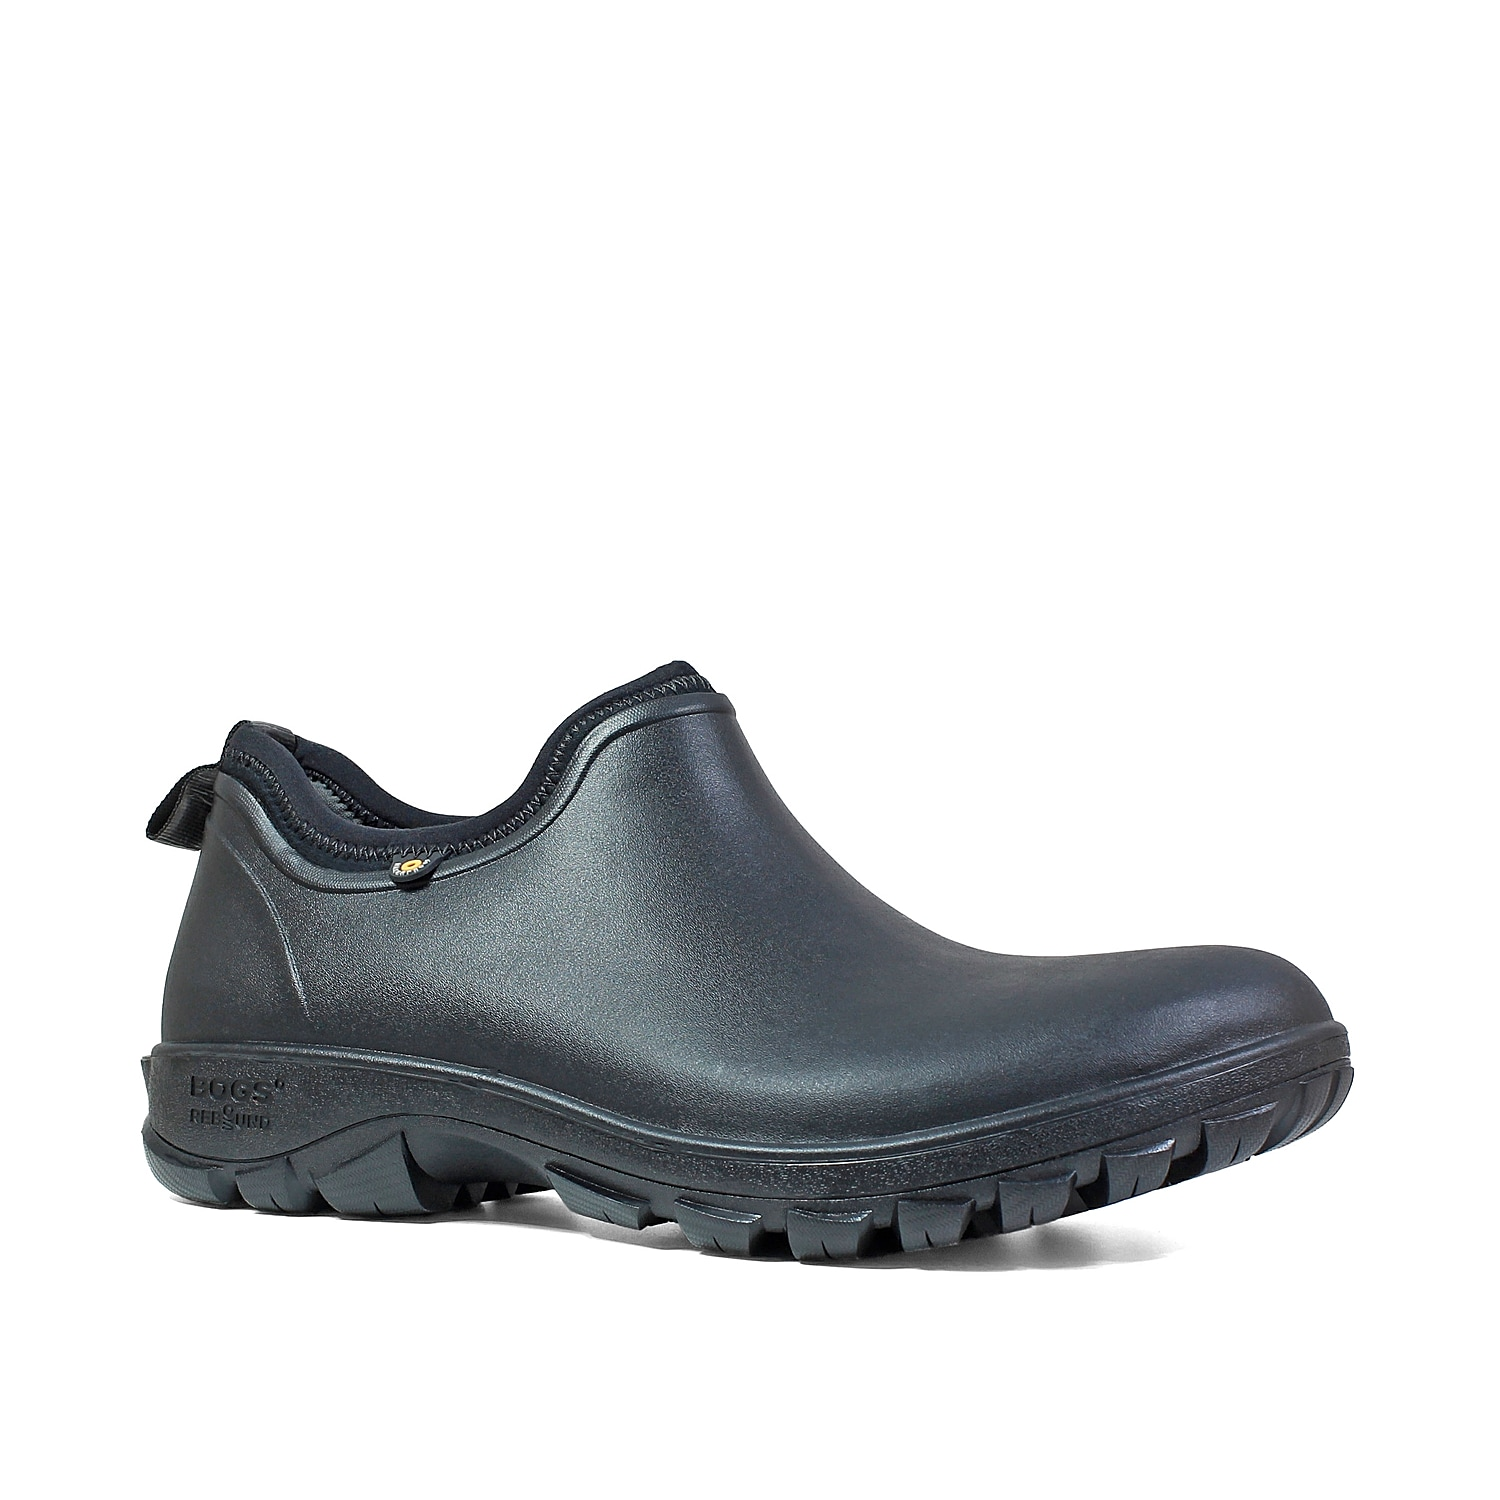 The Sauvie slip-on boot from Bogs will be your best bet when trying to stay protected in cold temperatures. This boot features a waterproof construction and a 3mm Neo-Tech™ insulated lining that will help you stay confident when shoveling the snow!